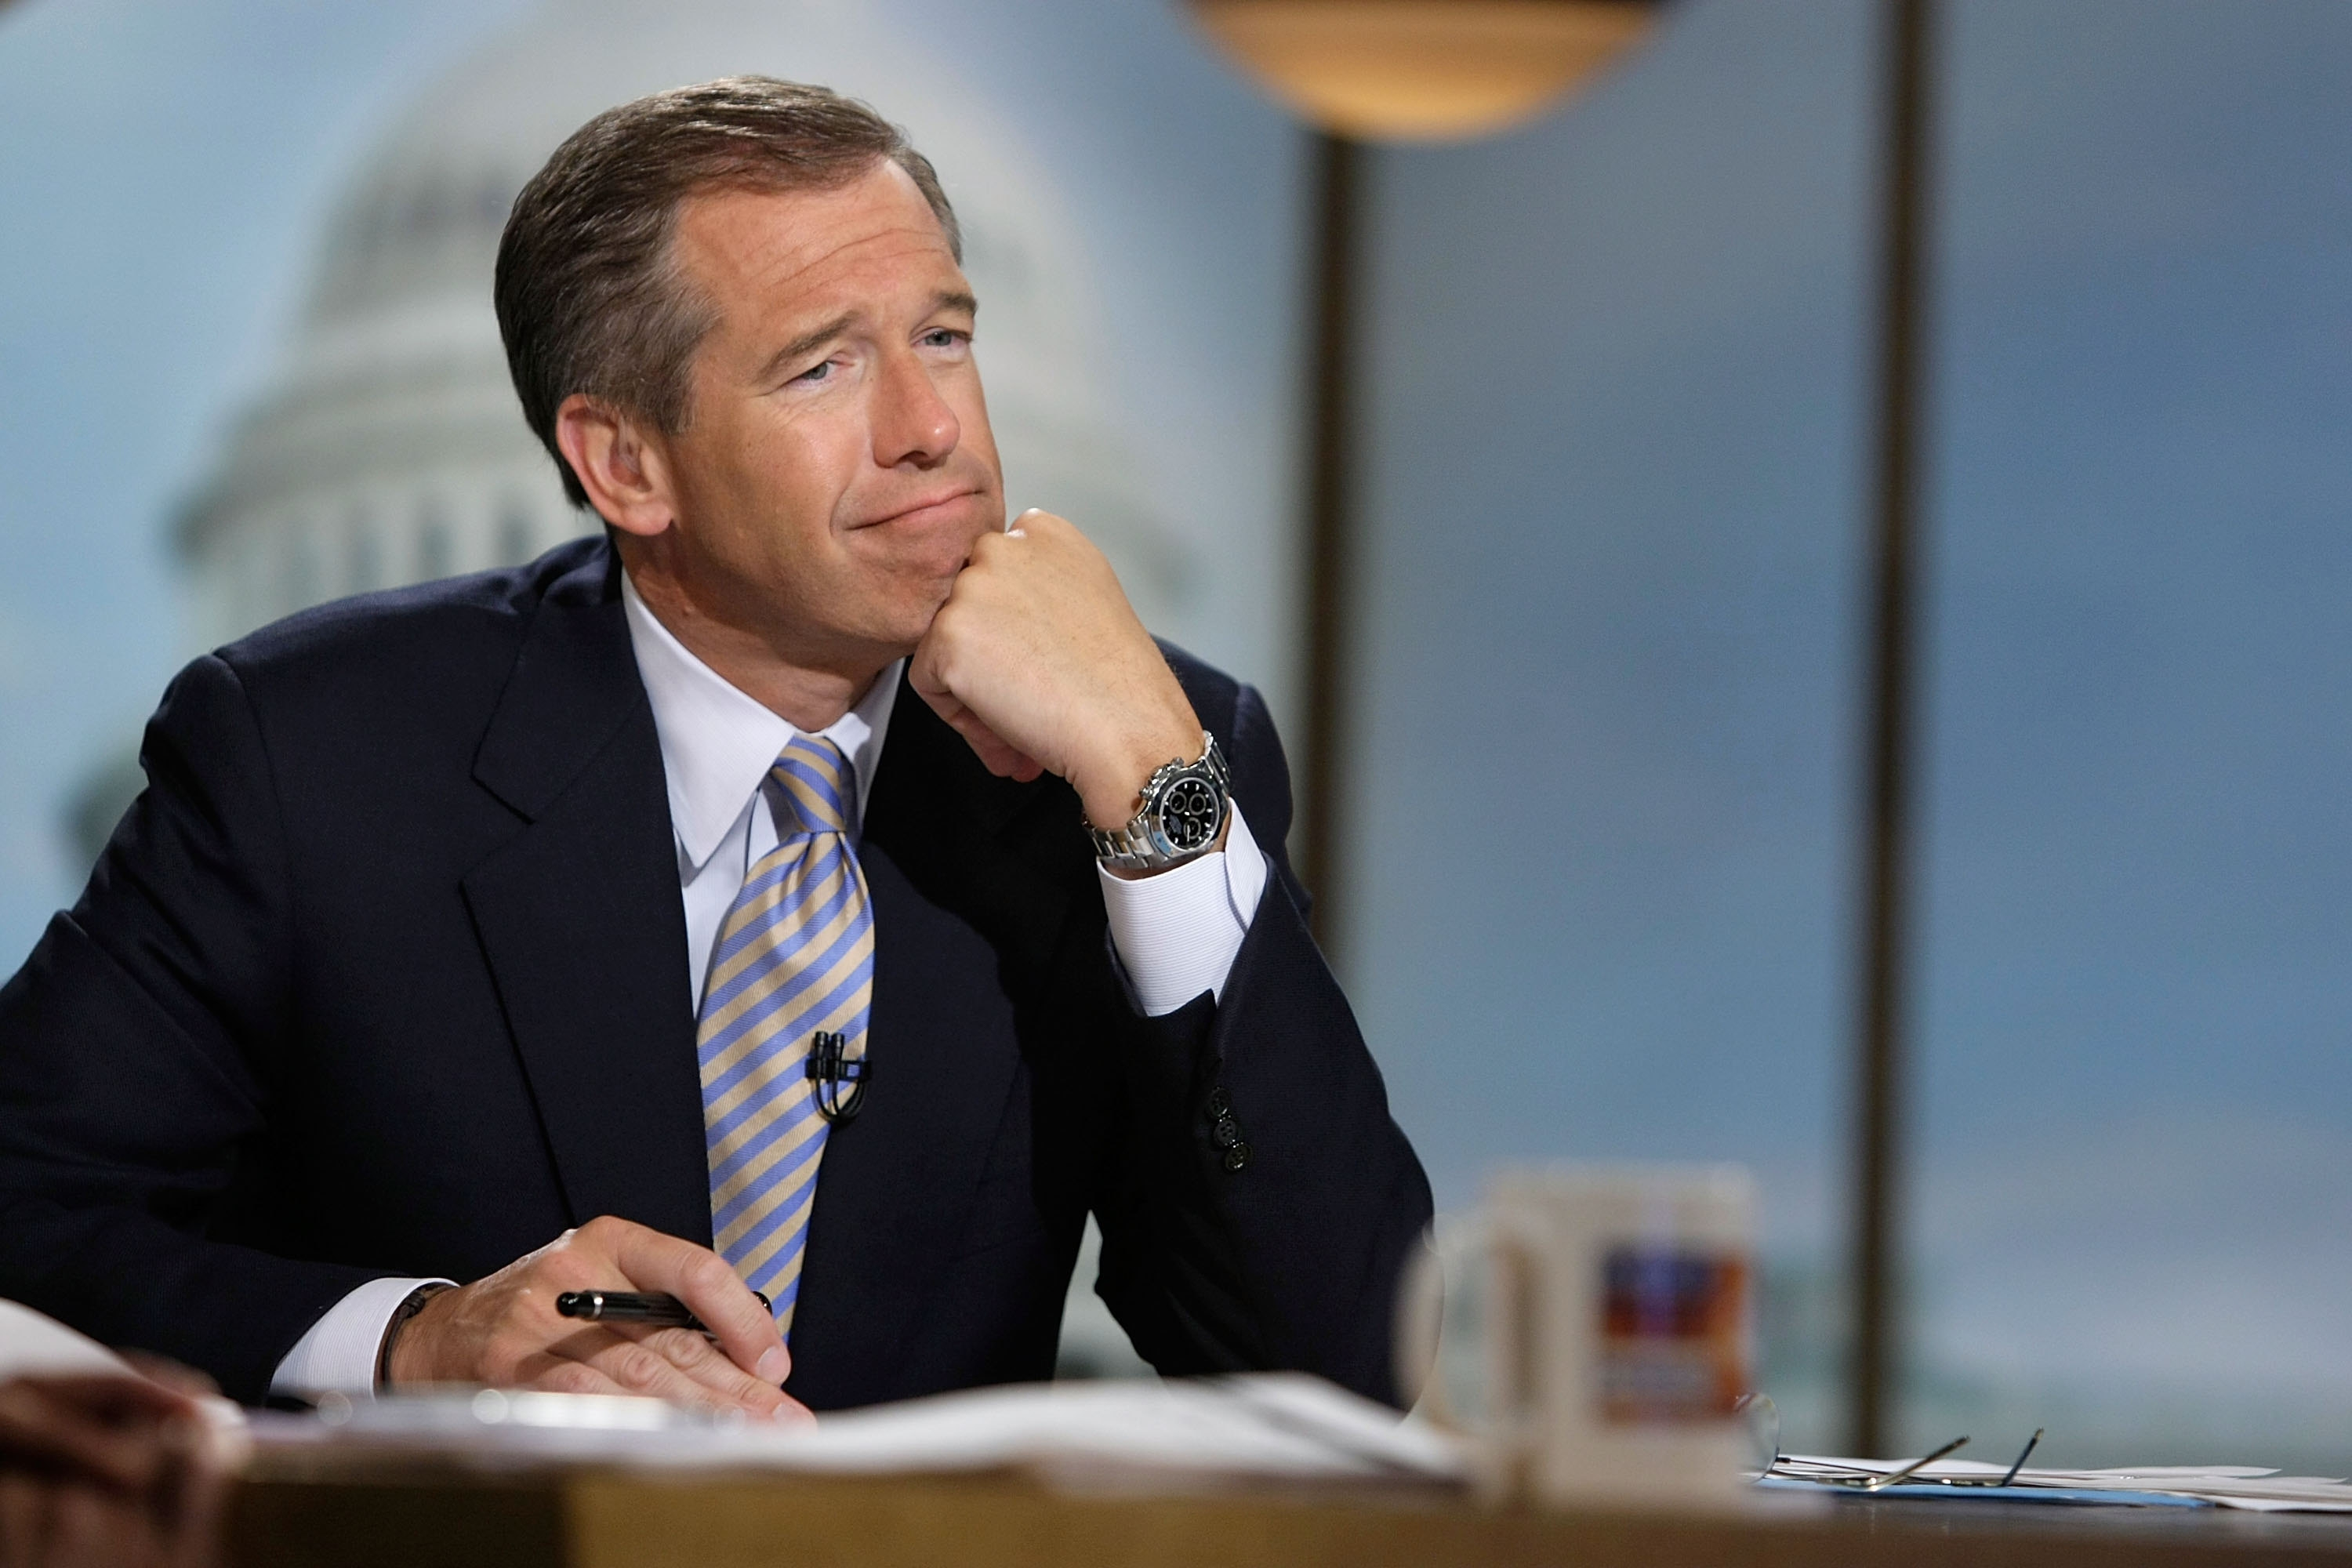 According to reports, Brian Williams will remain at NBC, but not as 'Nightly News' anchor. (Getty Images file photo)